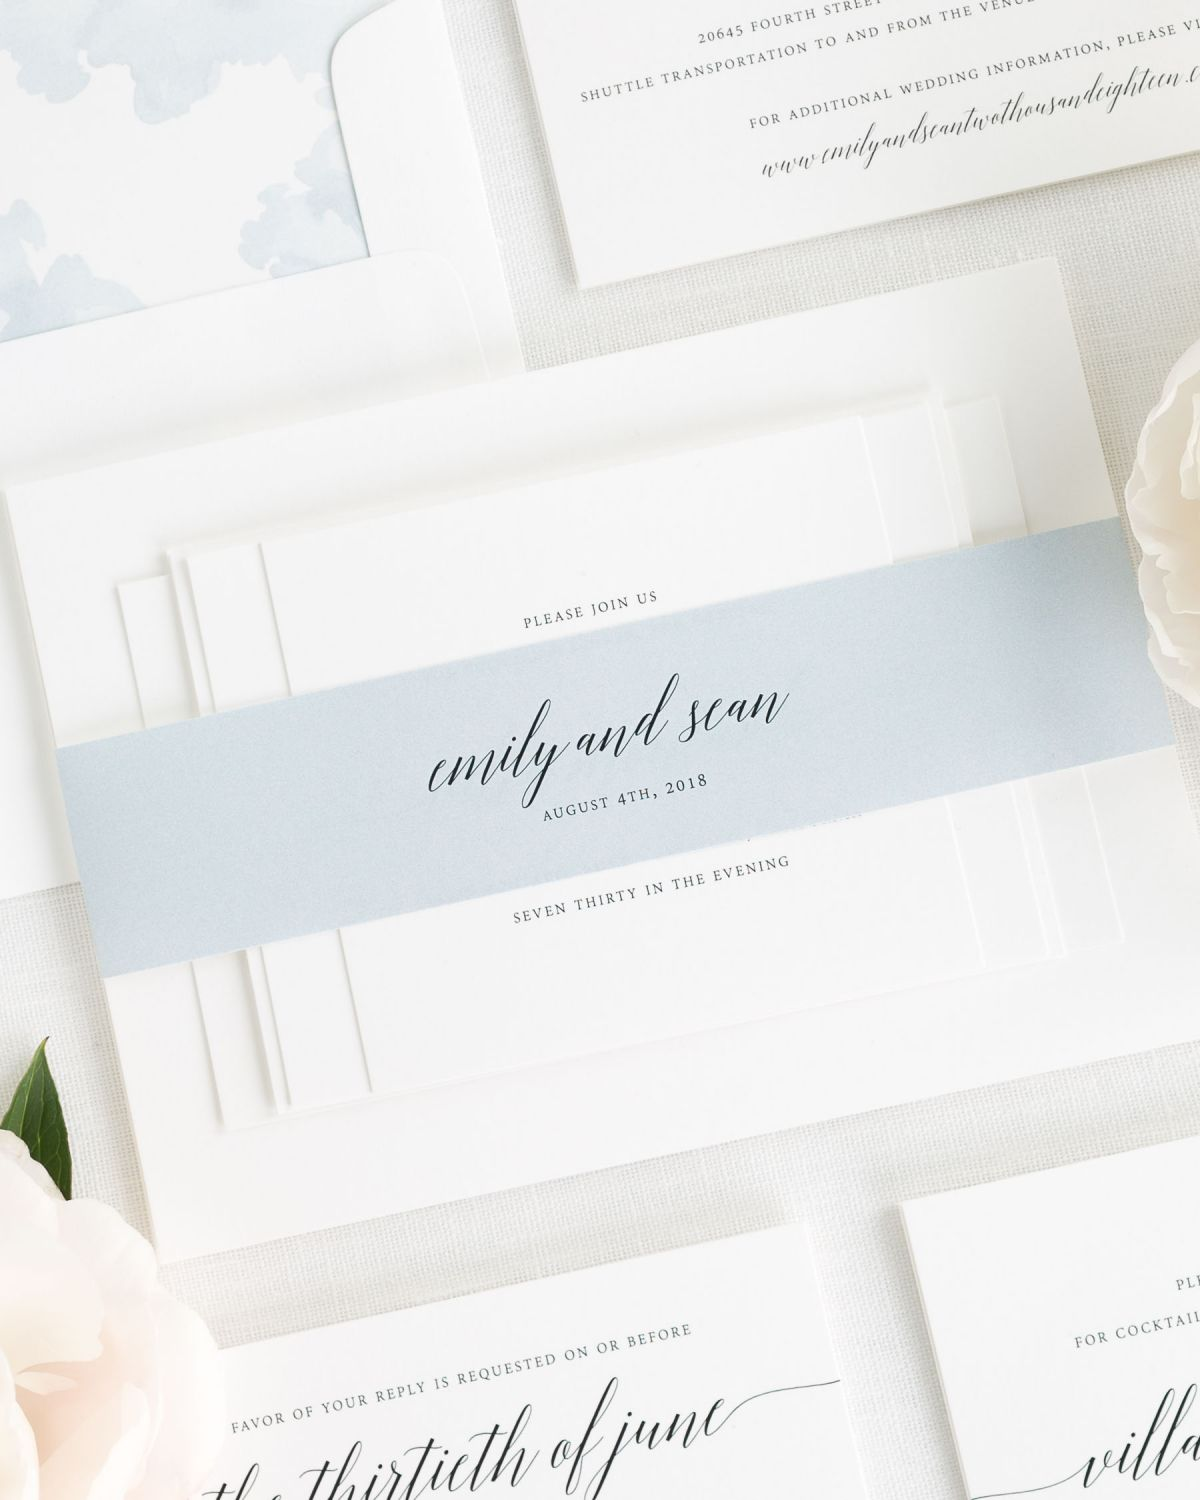 Delicate Romance Wedding Invitations - Wedding Invitations by Shine